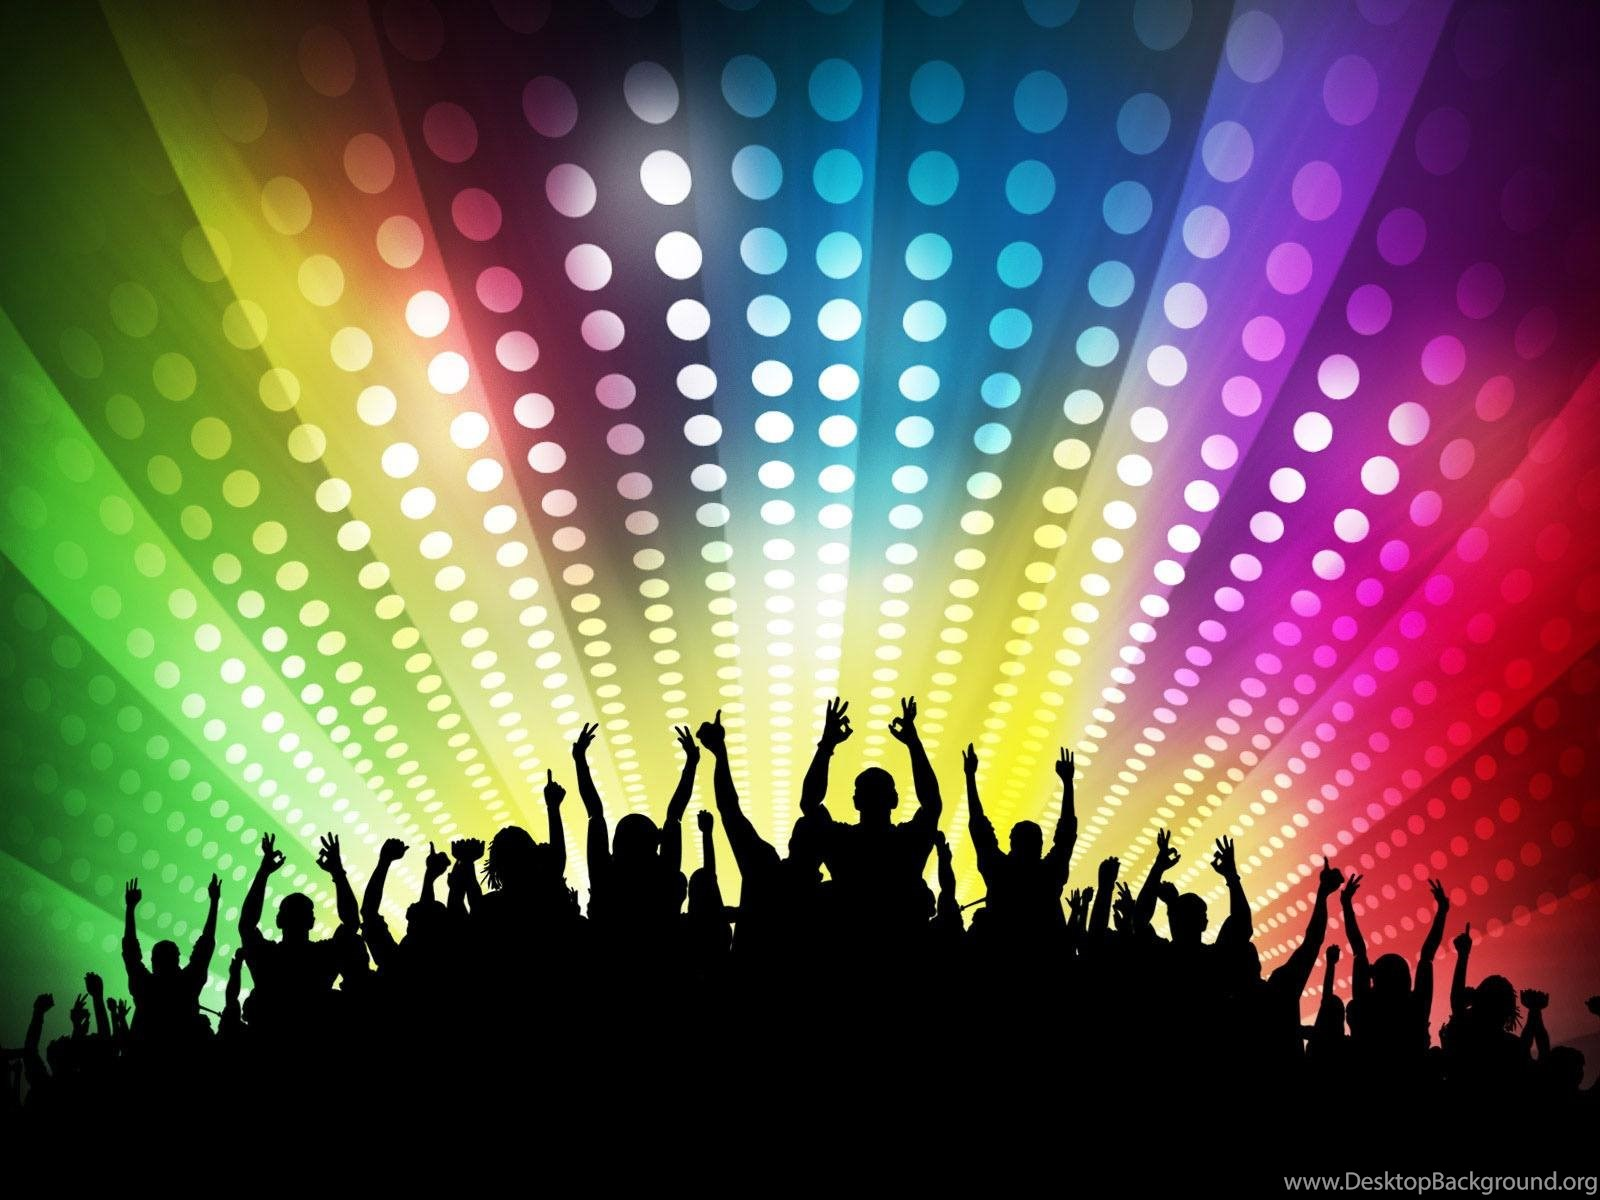 Wallpapers For Dance Party Backgrounds Lights Desktop Background